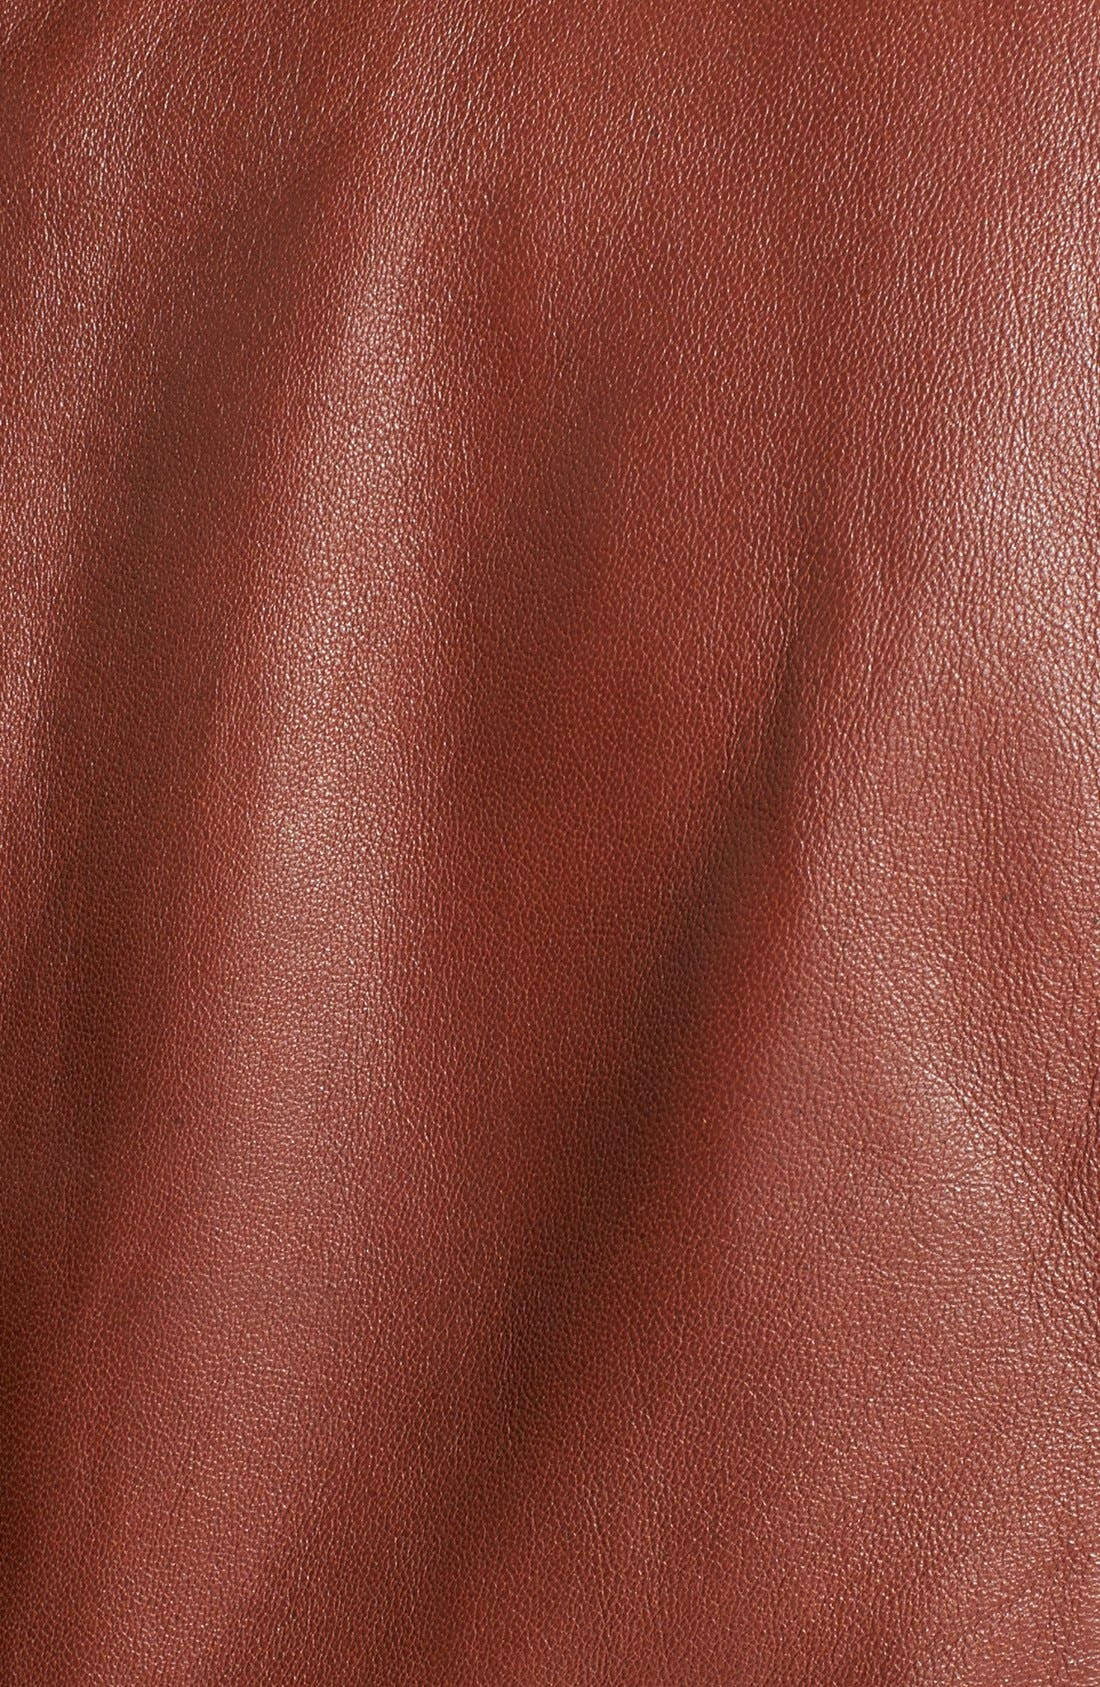 Waterfall Front Leather Jacket,                             Alternate thumbnail 6, color,